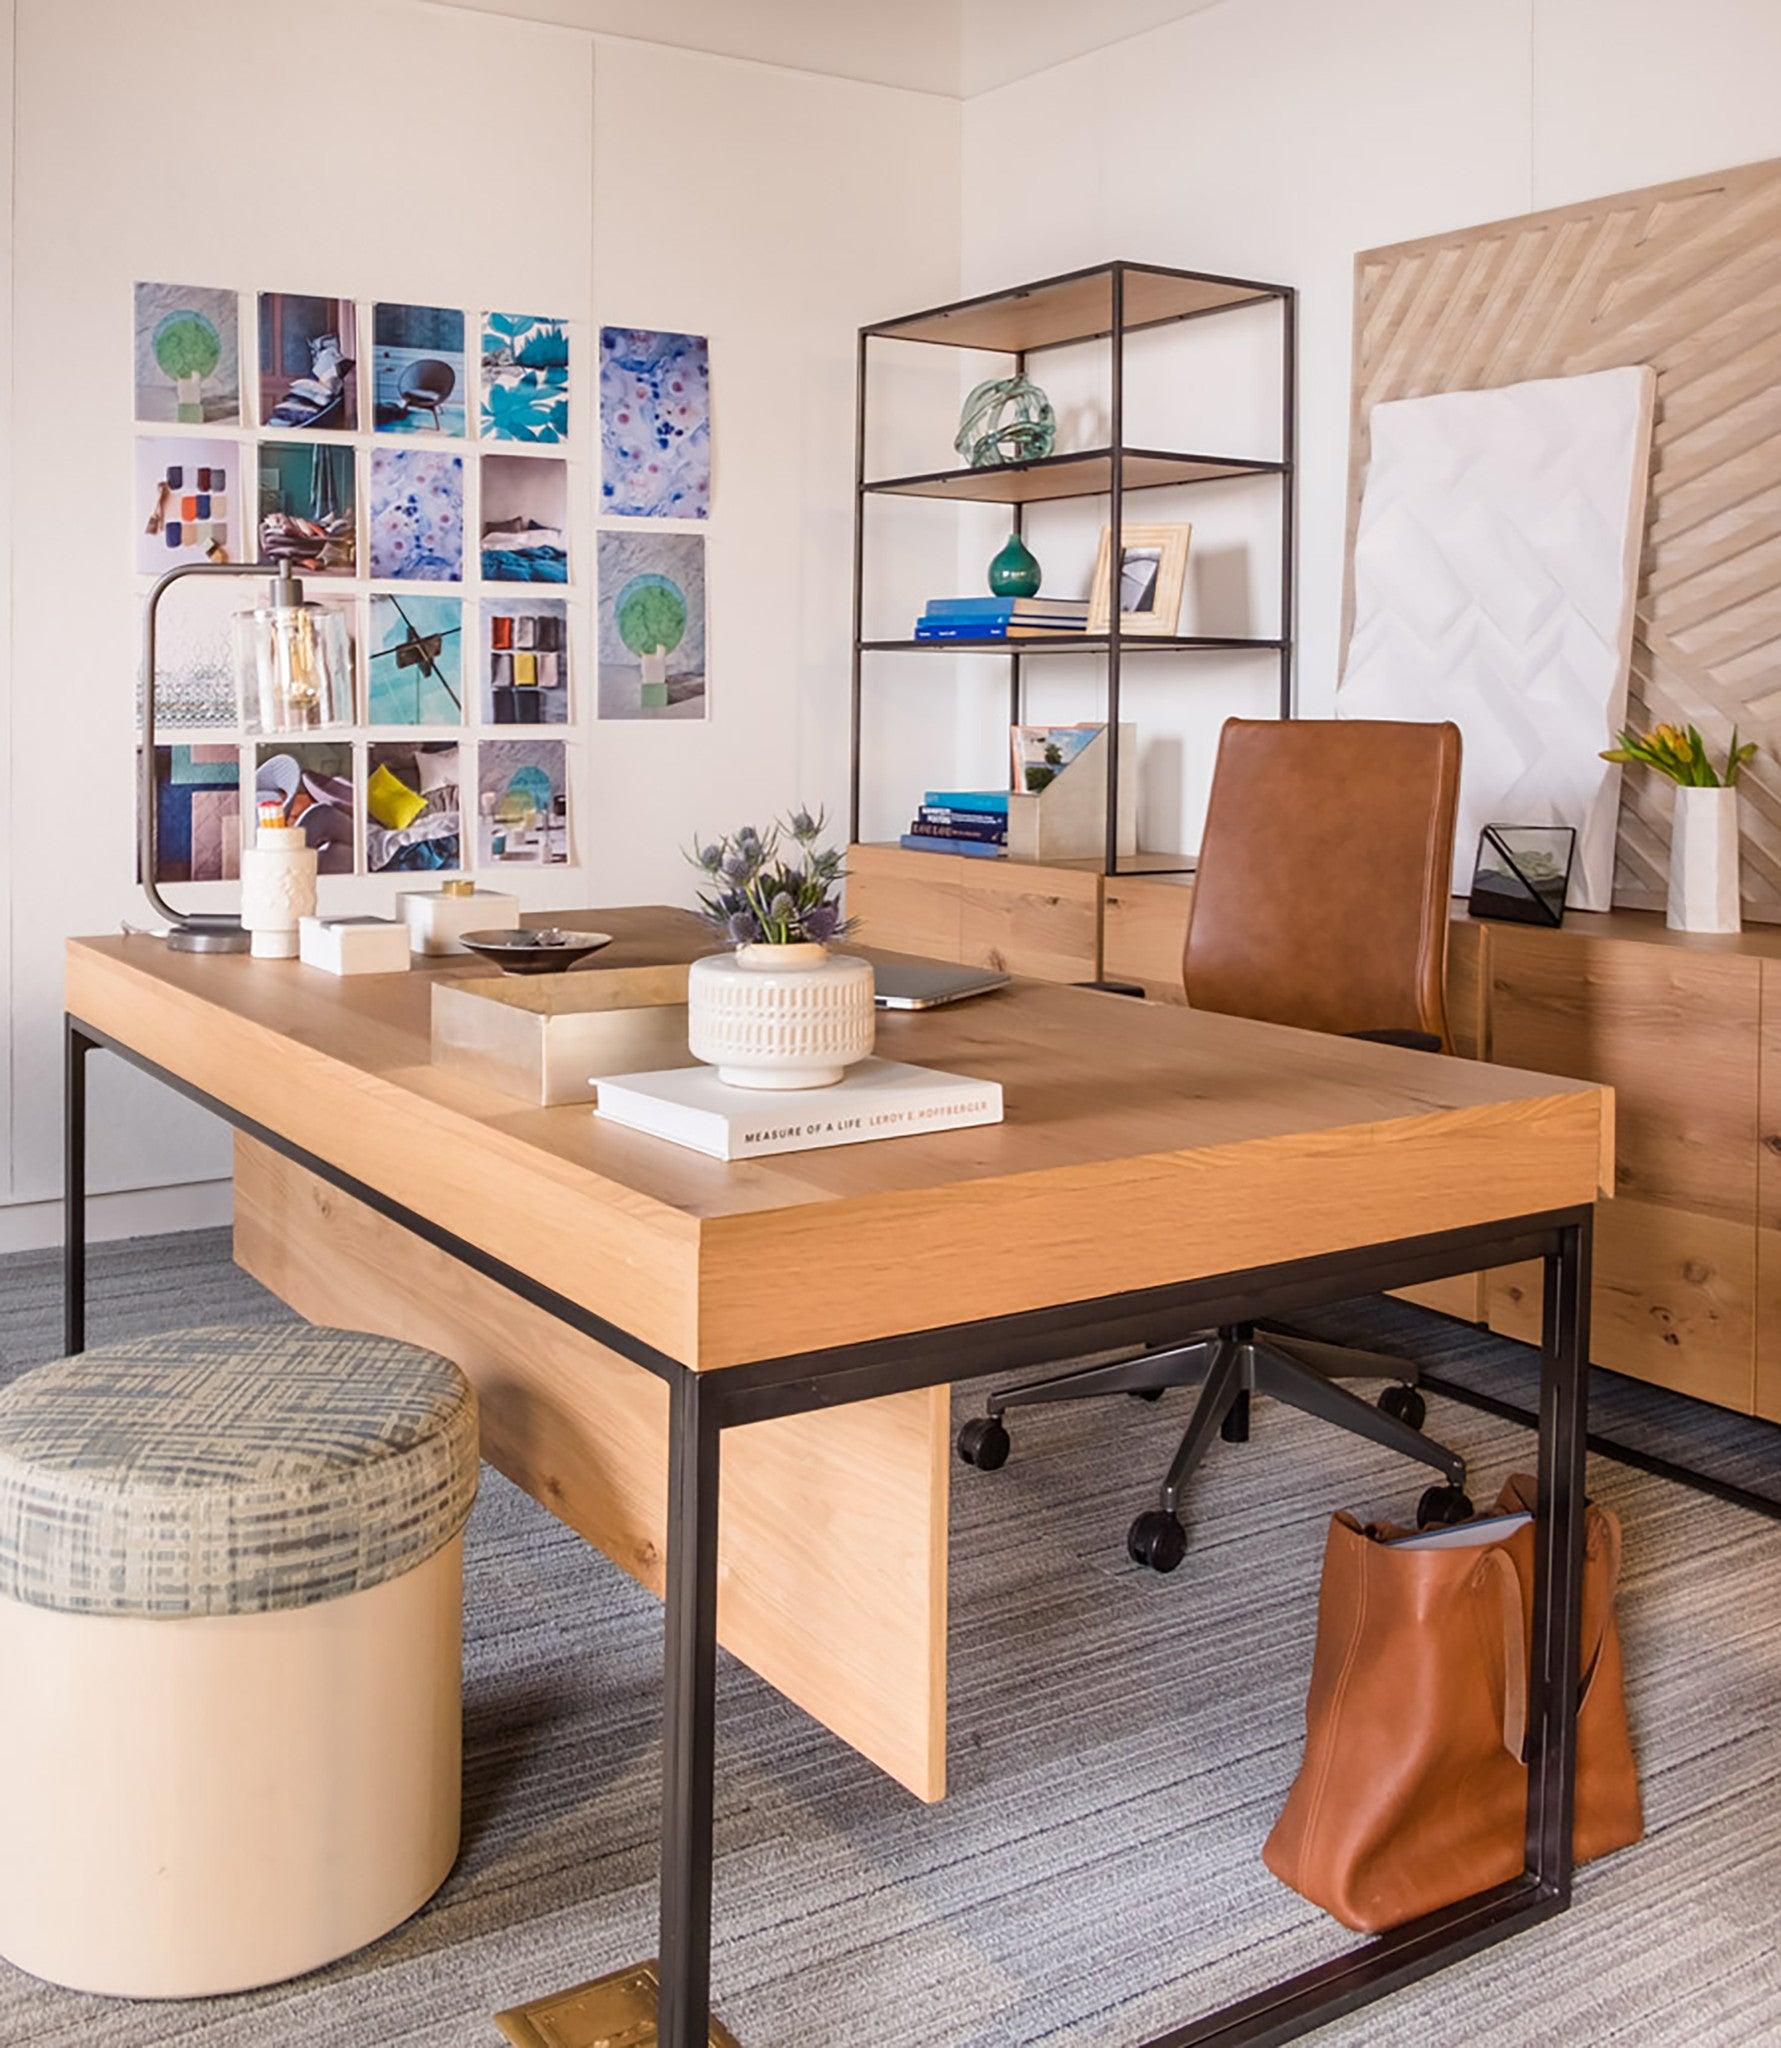 5 Tips for Getting and Staying Organized west elm WORKSPACE